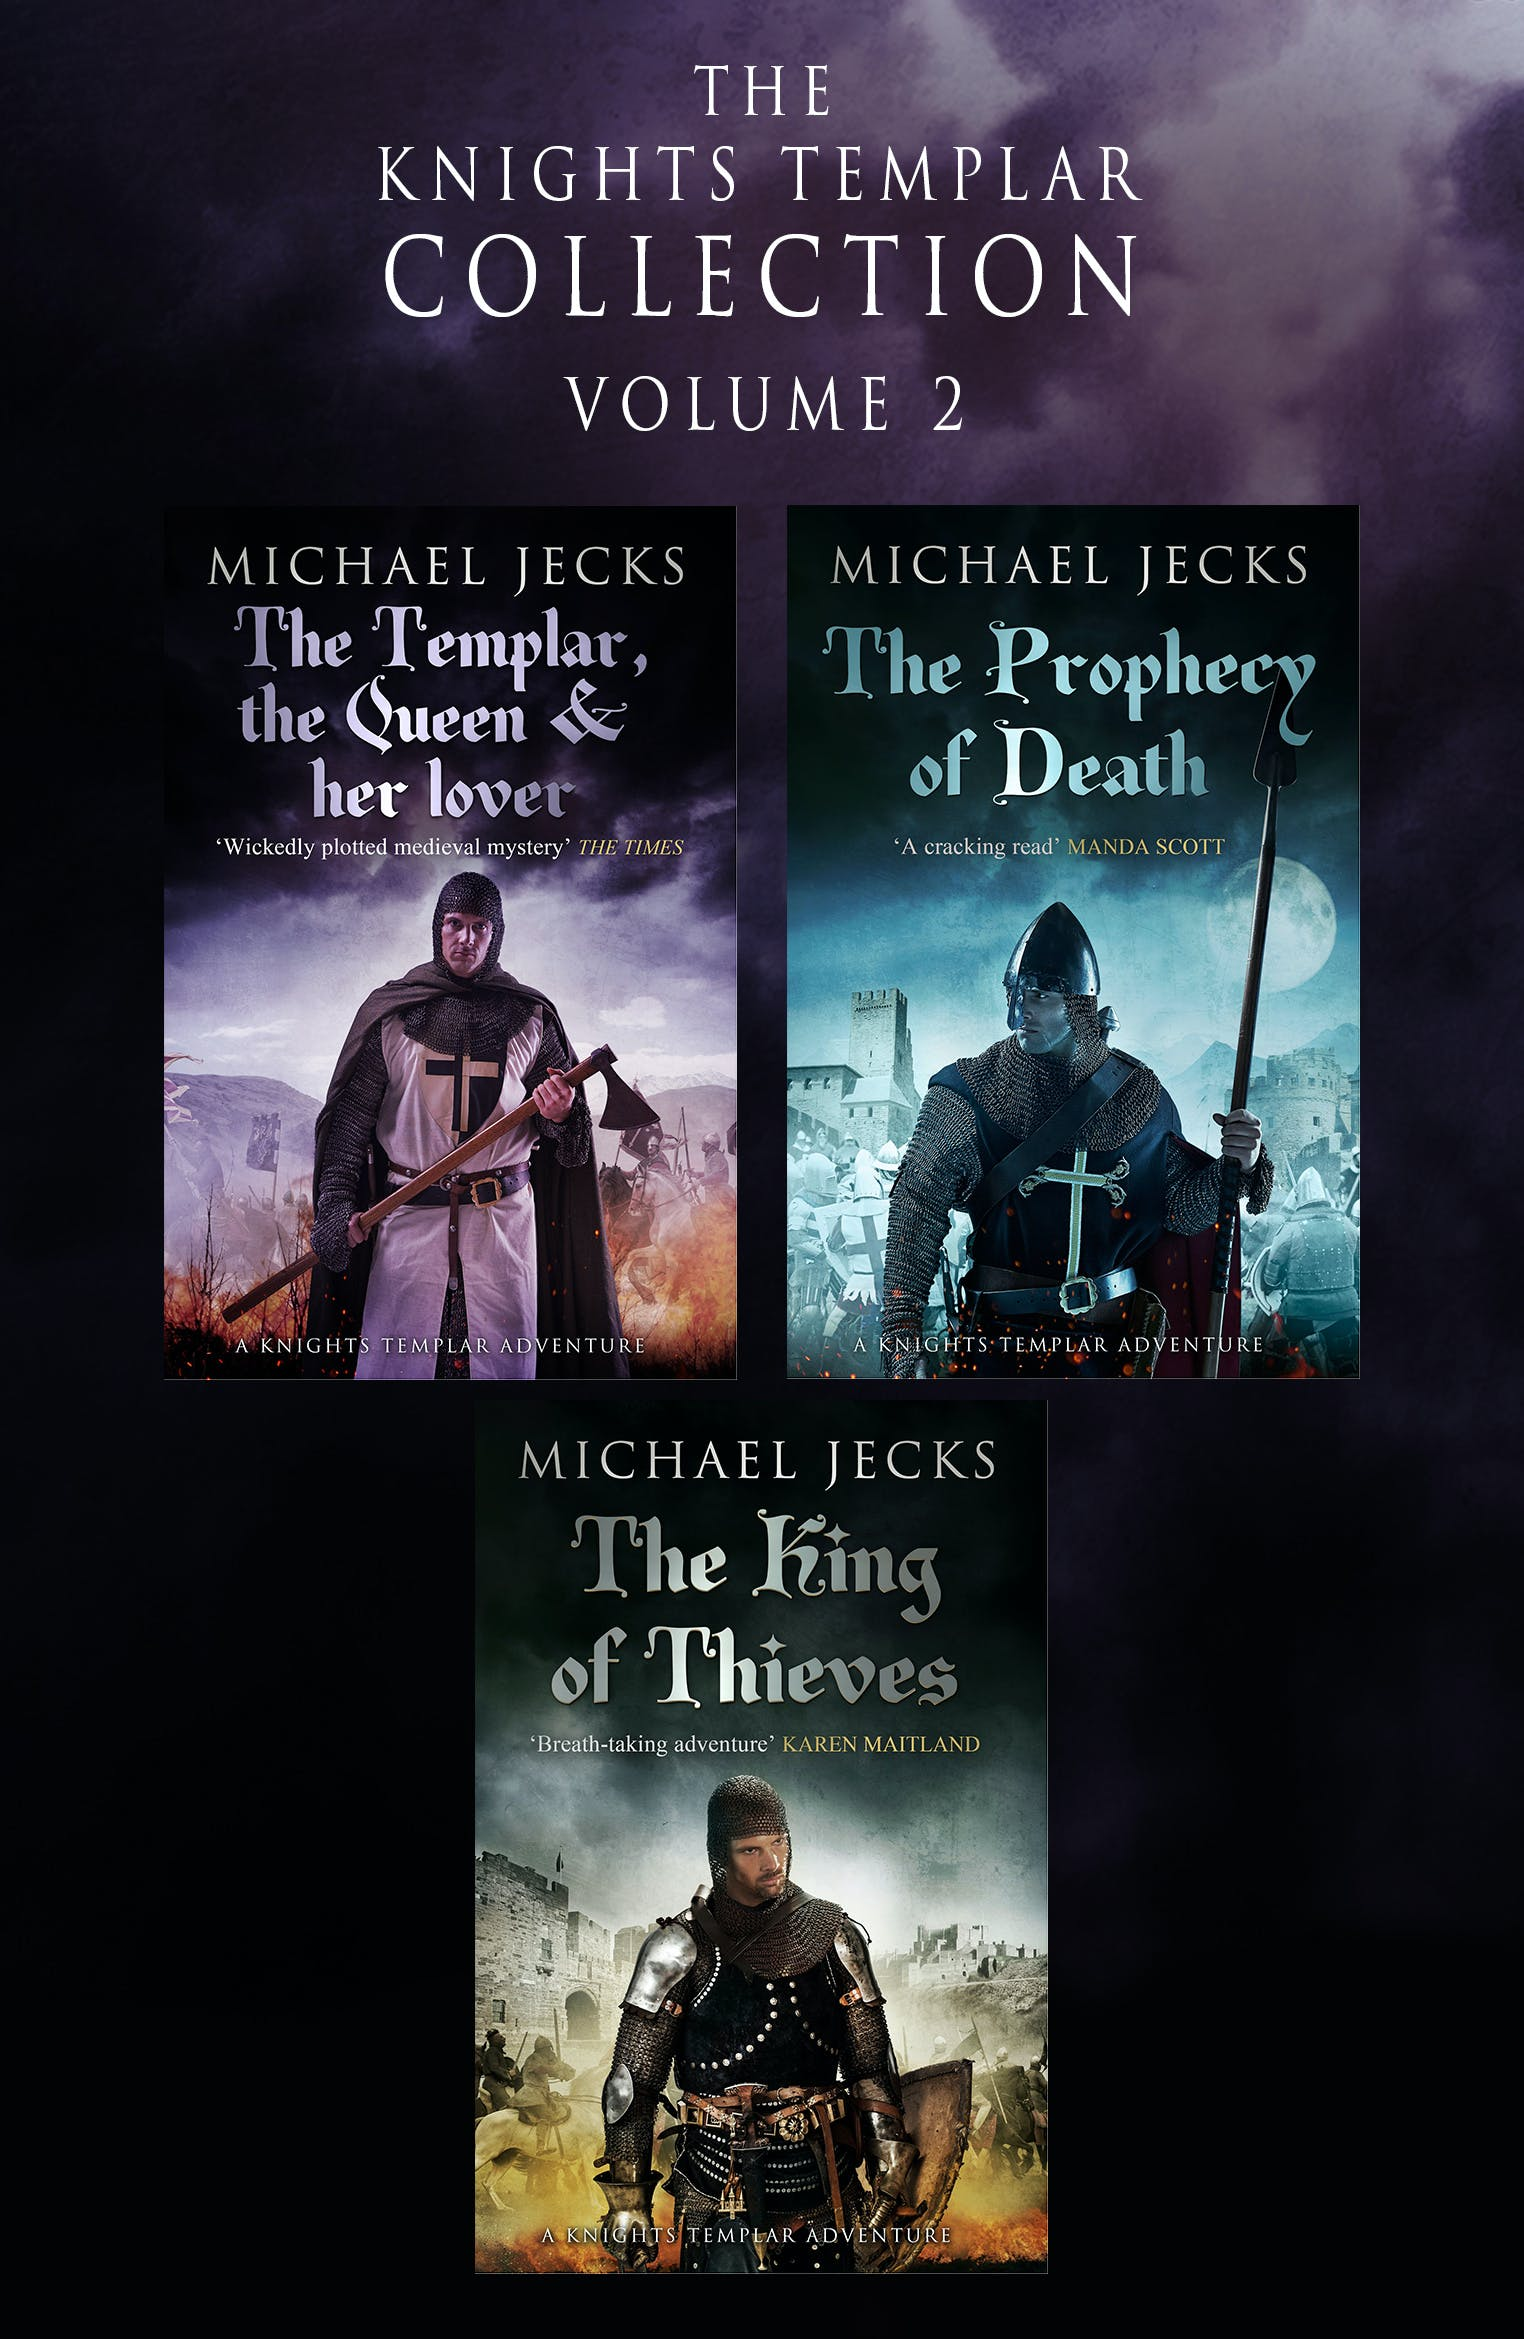 The Knights Templar Collection: Volume 2 by Michael Jecks